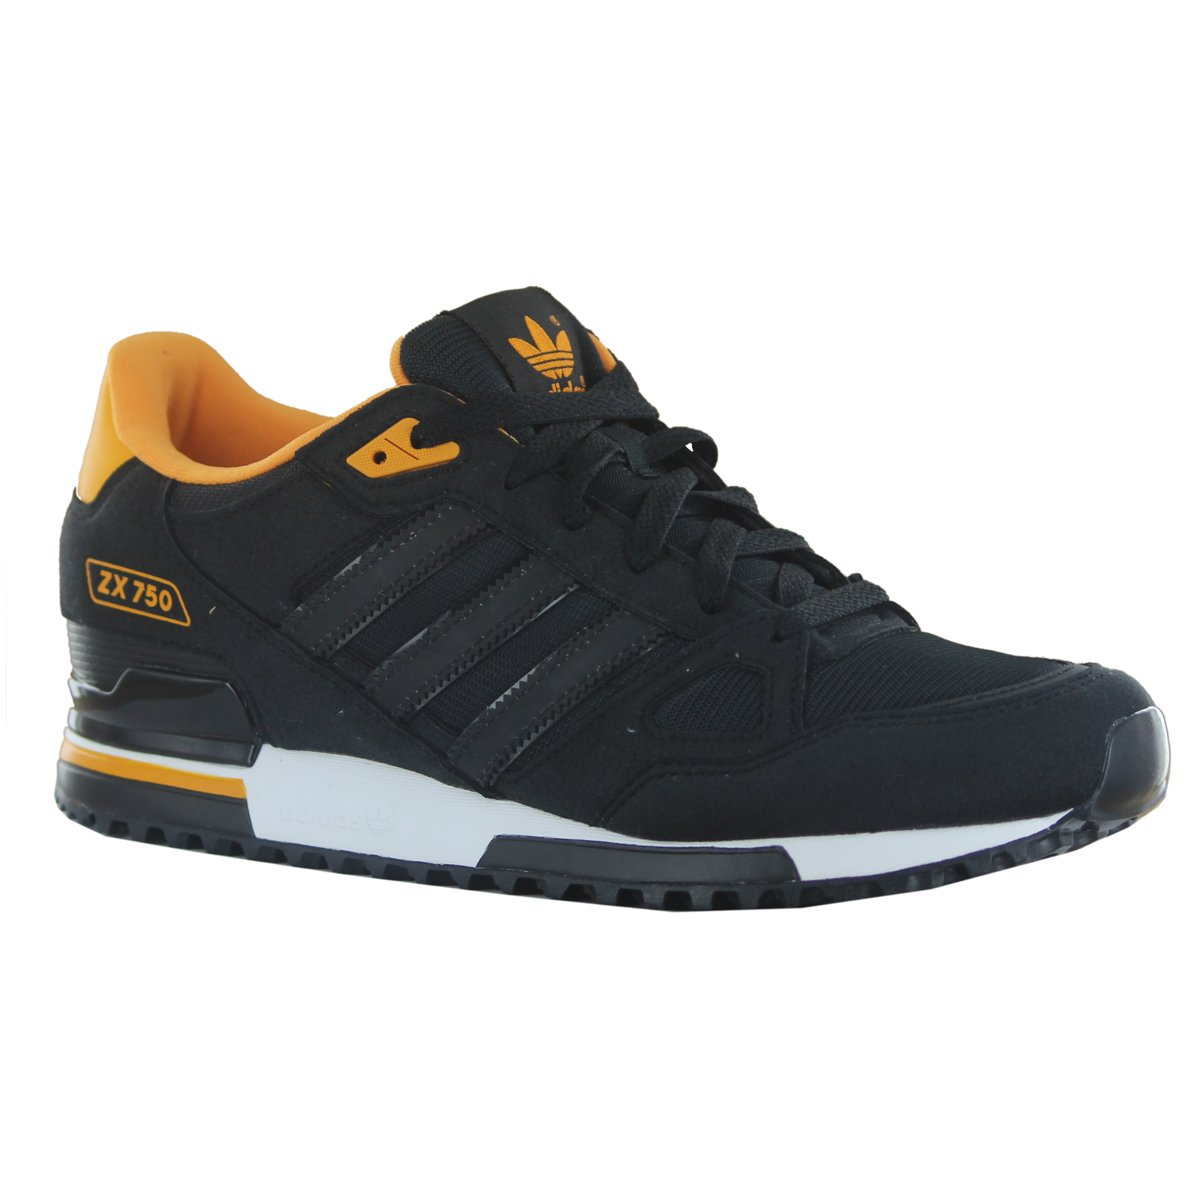 203894e12dc51 ... new arrivals adidas zx 750 black suede leather mens trainers size 8.5  uk amazon shoes bags